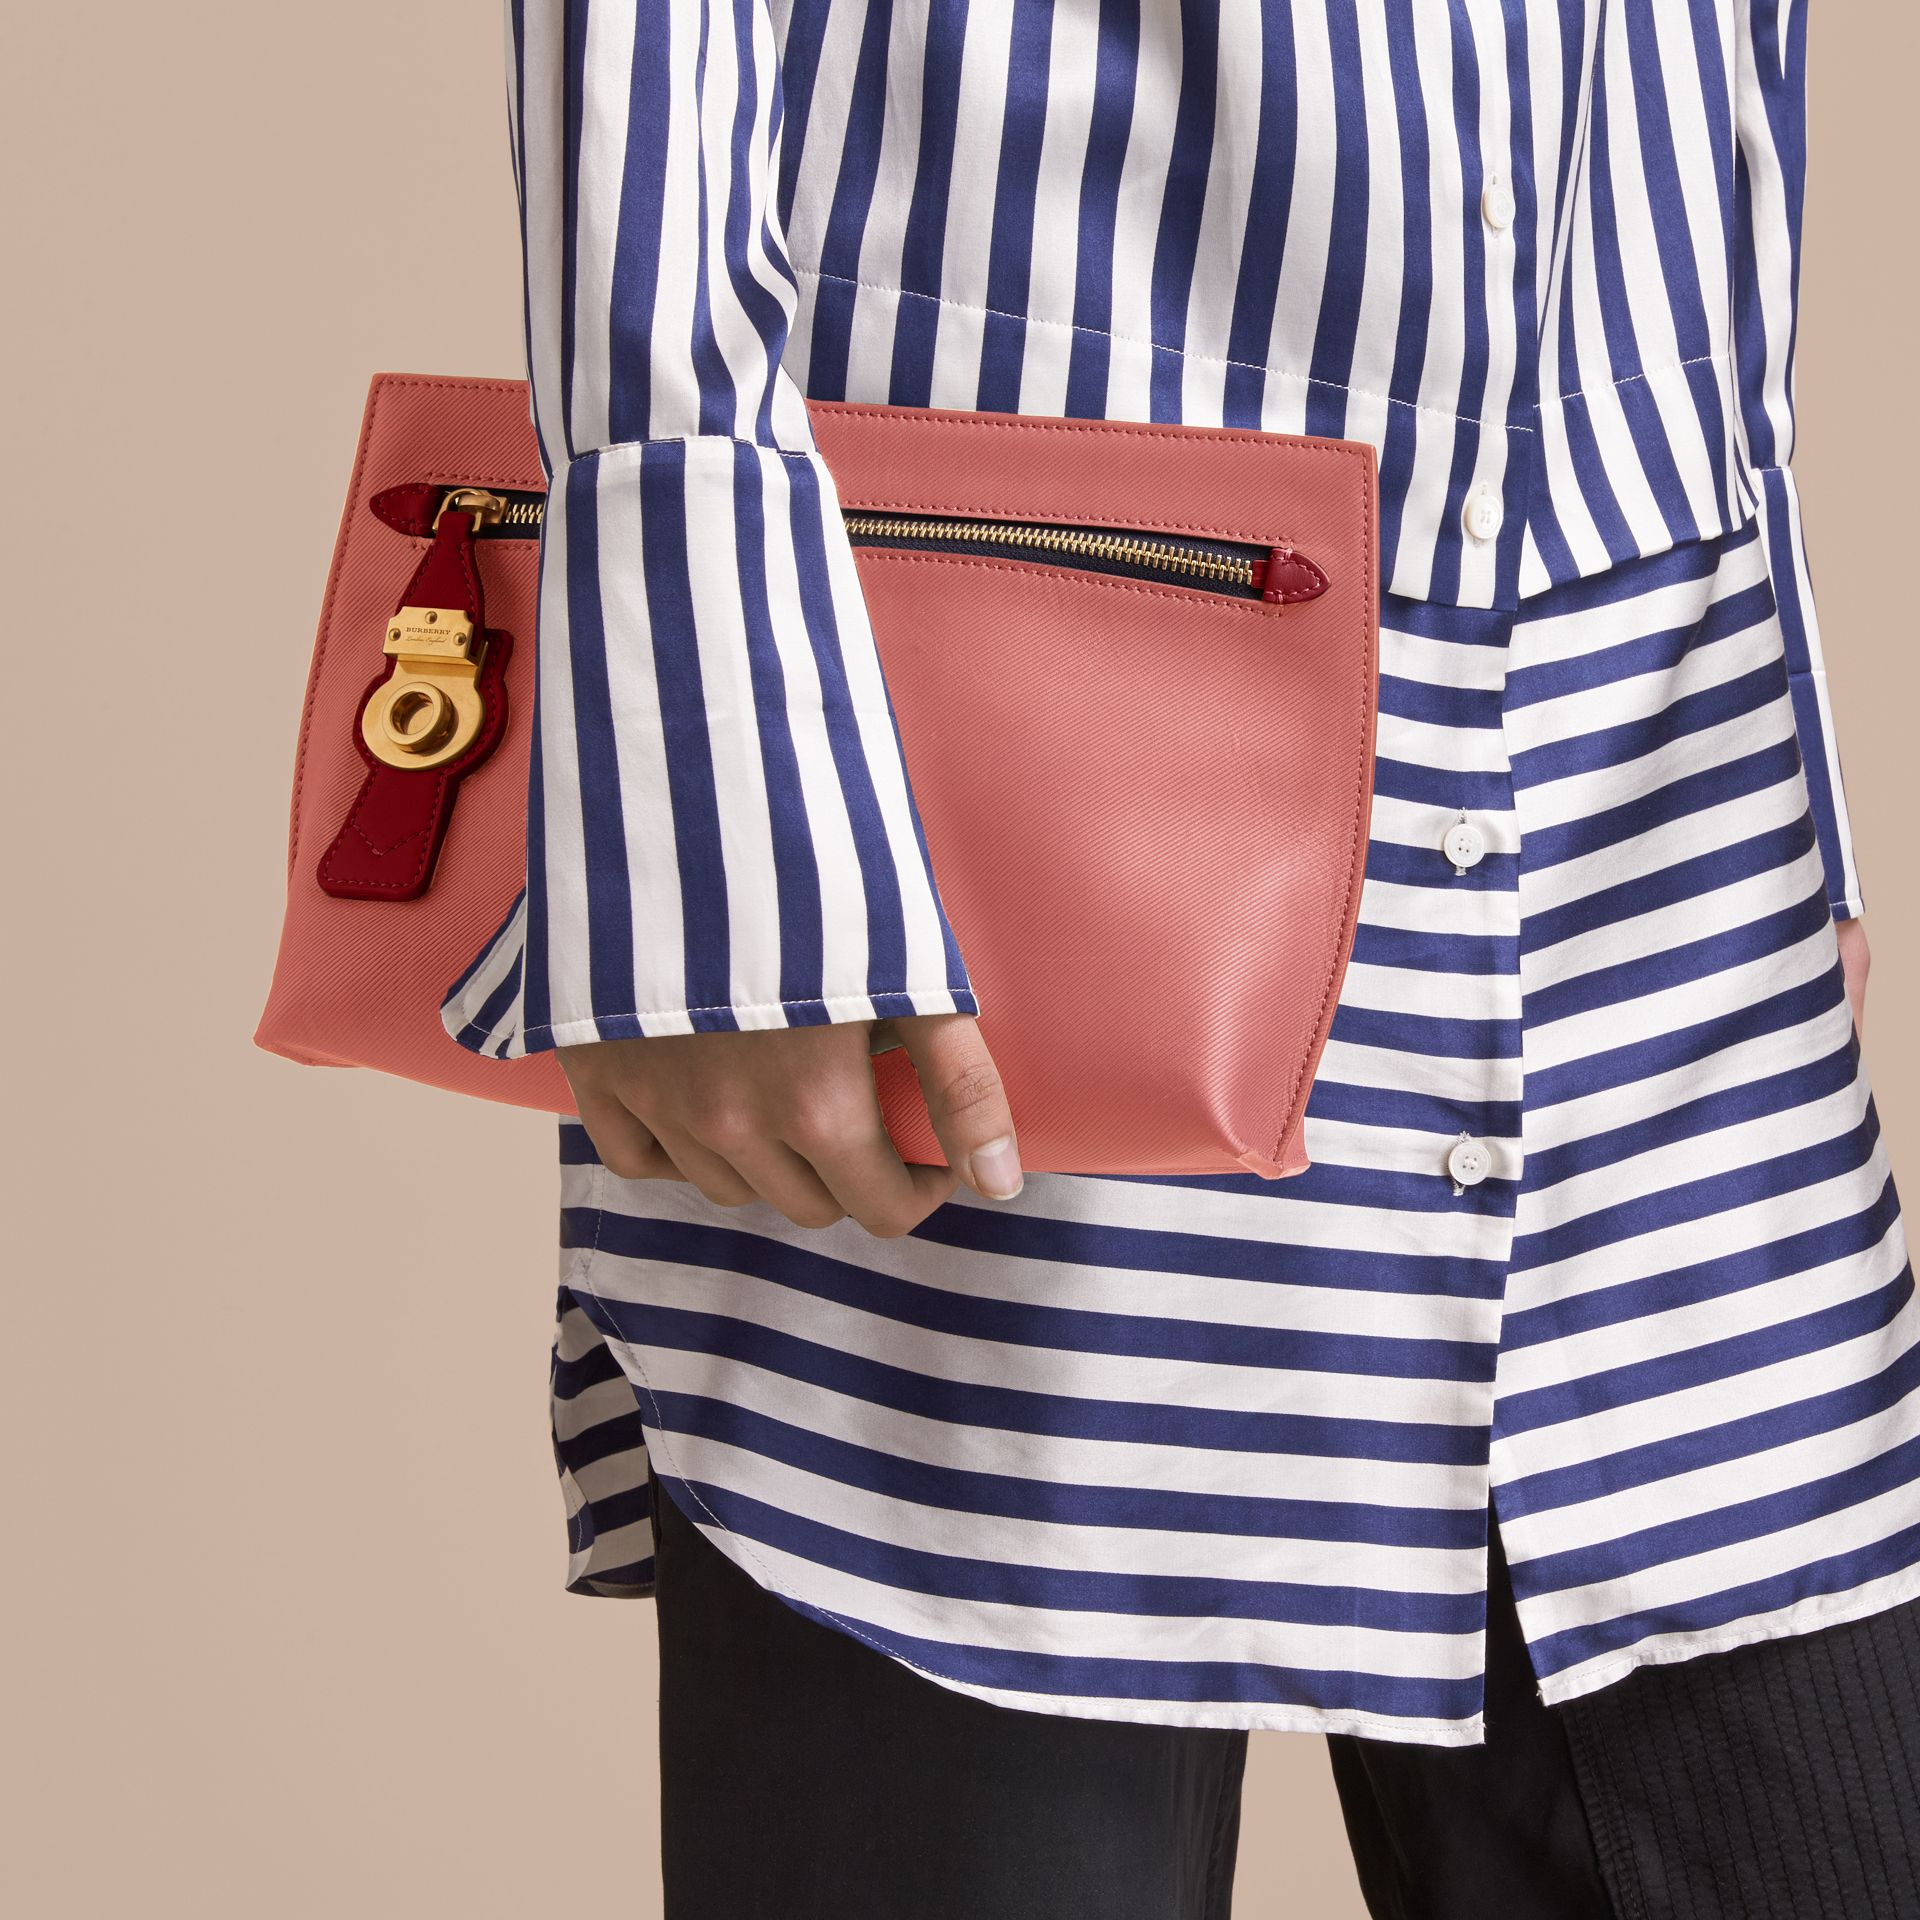 Two-tone Trench Leather Wristlet Pouch Blossom Pink/antique Red - gallery image 3